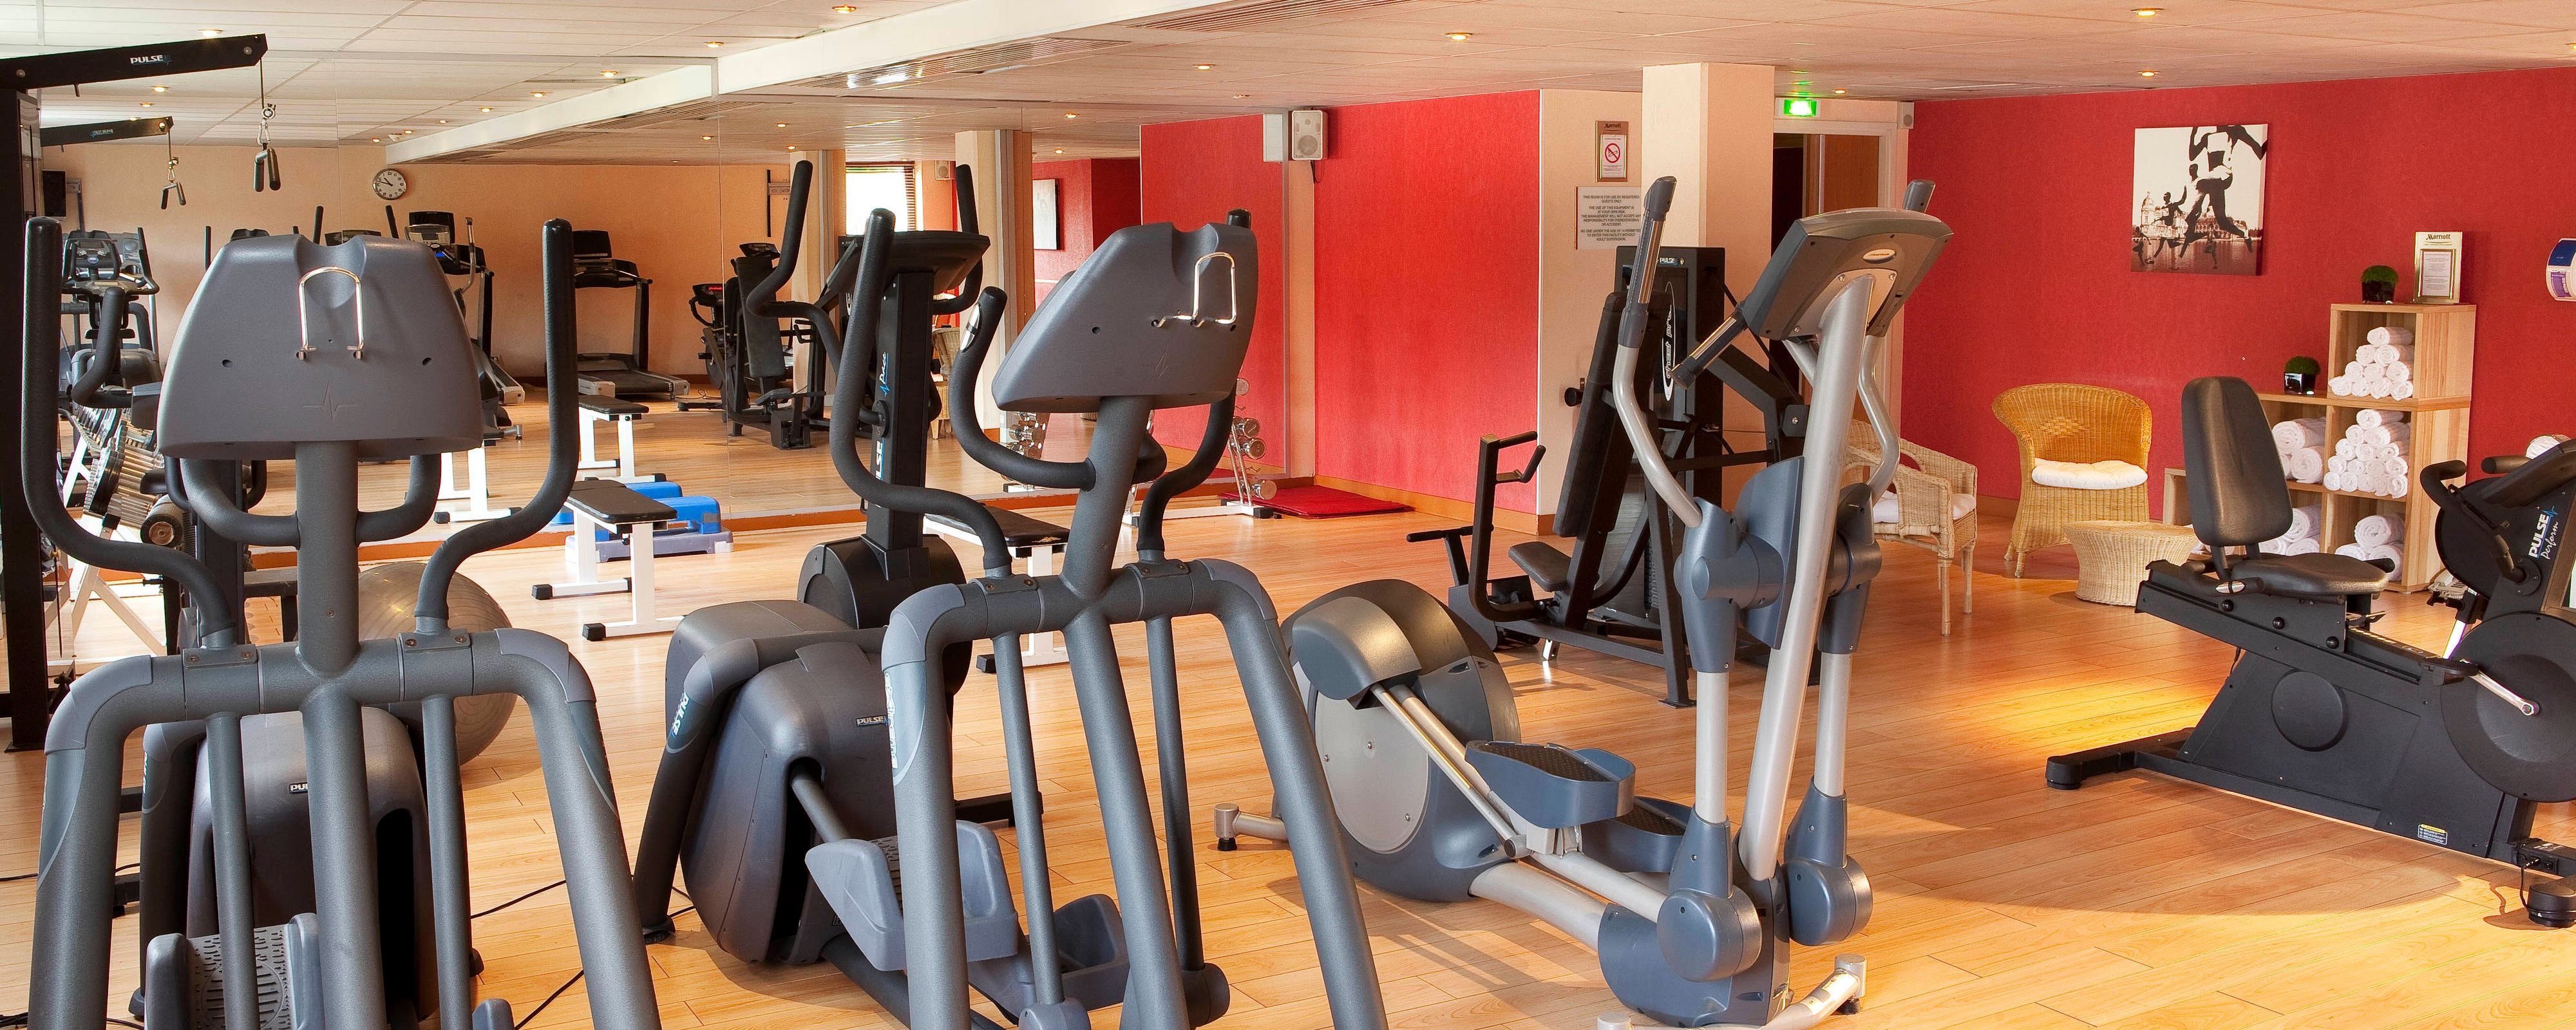 CDG airport hotel with gym